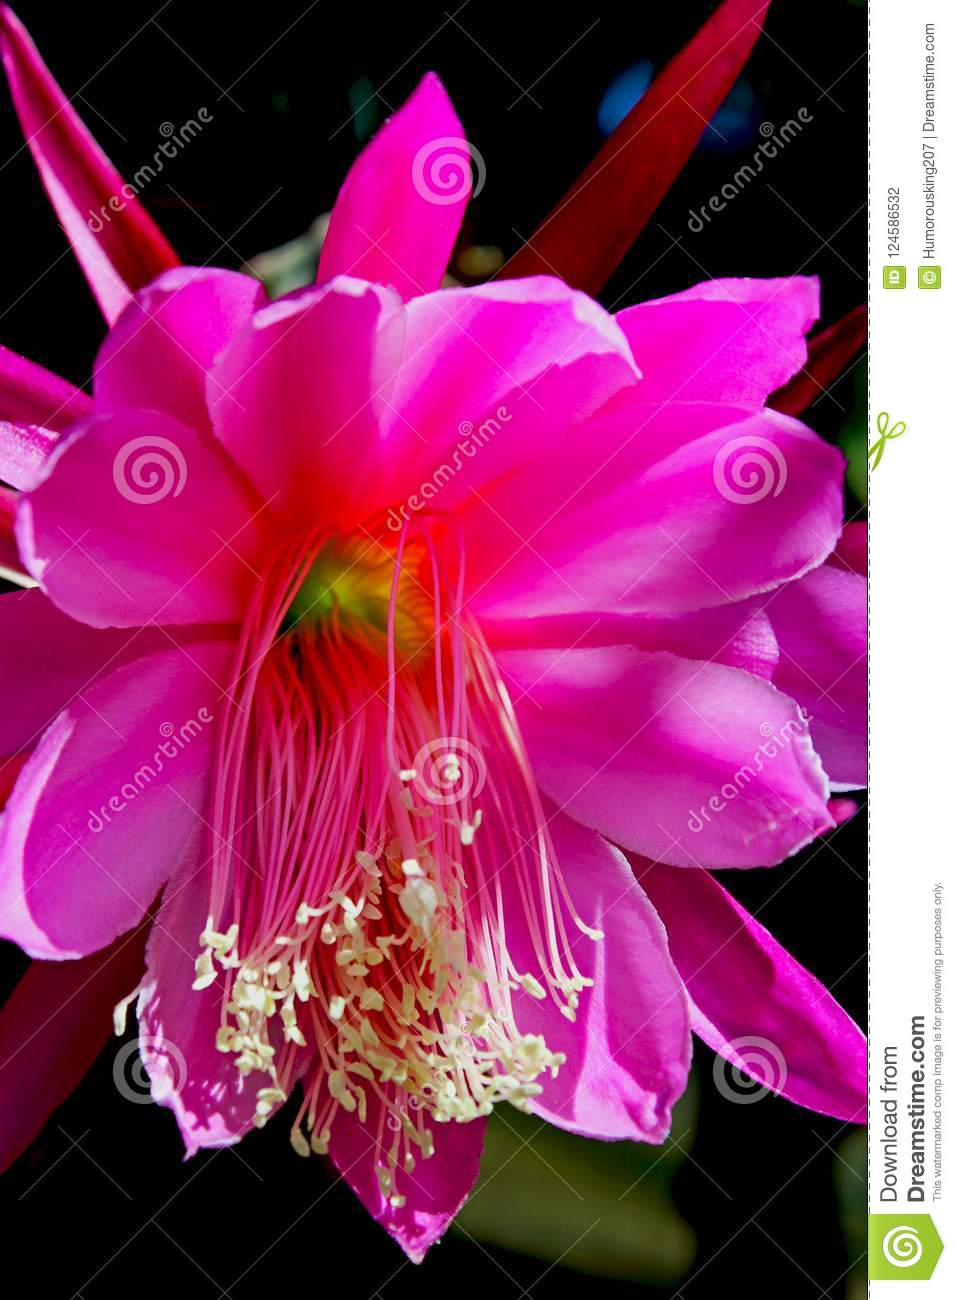 Pink flowers of the night blooming cereus stock photo image of download pink flowers of the night blooming cereus stock photo image of species mightylinksfo